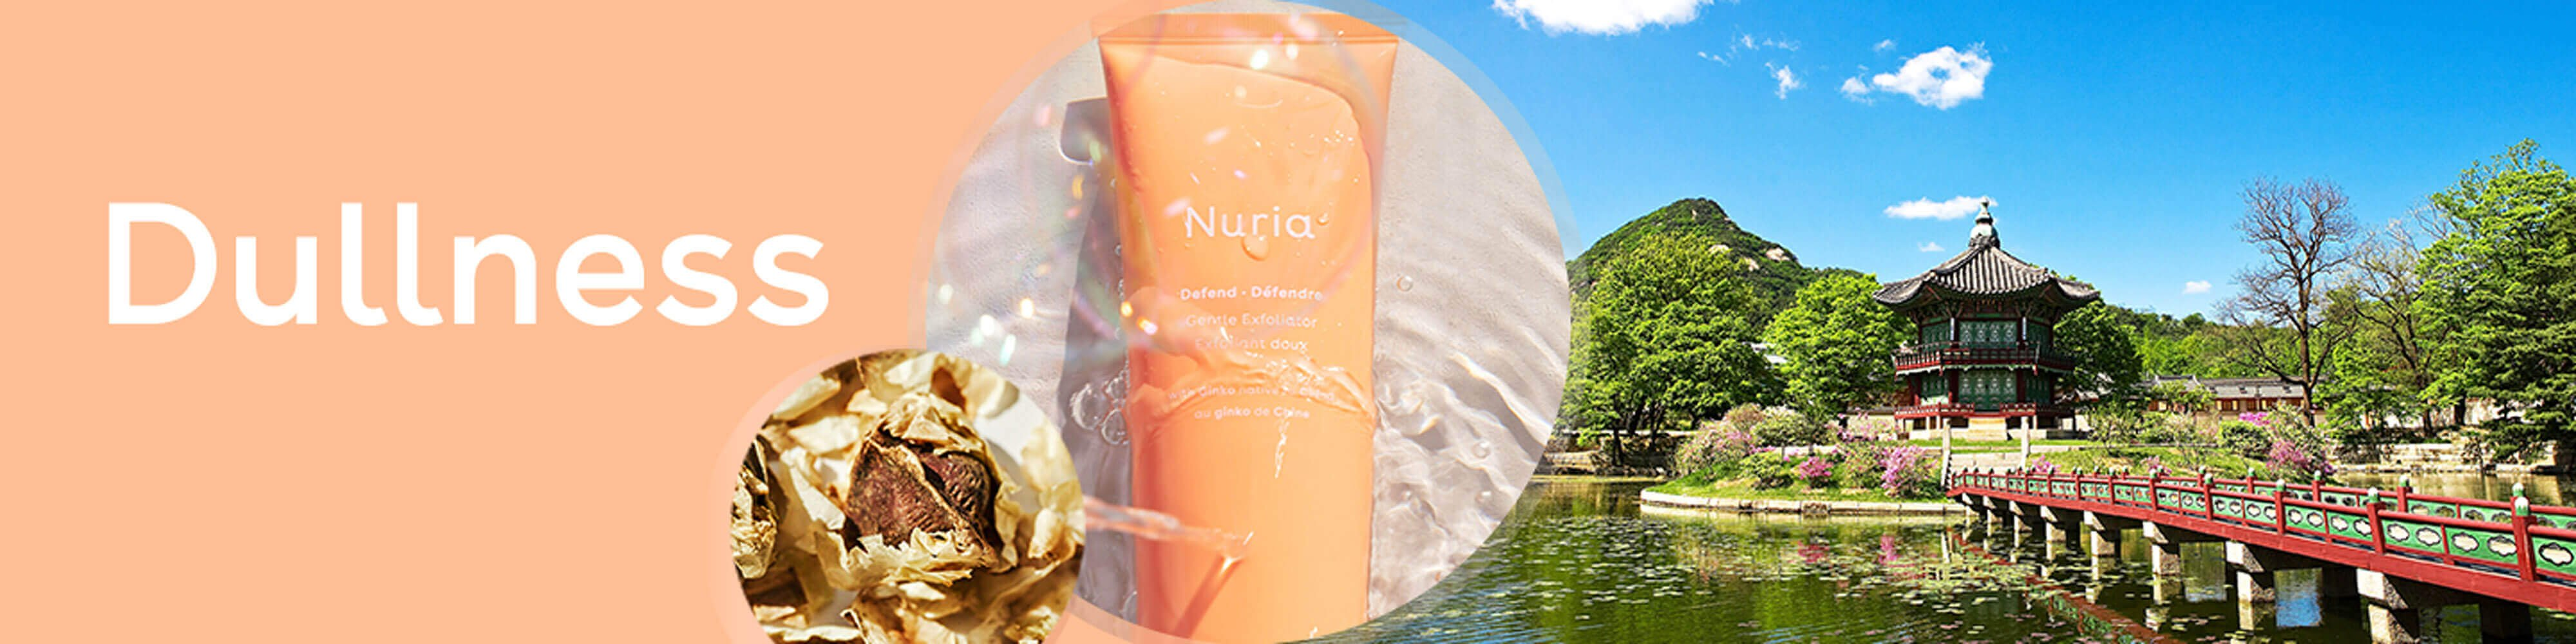 Dullness - Nuria's products for your skin concerns